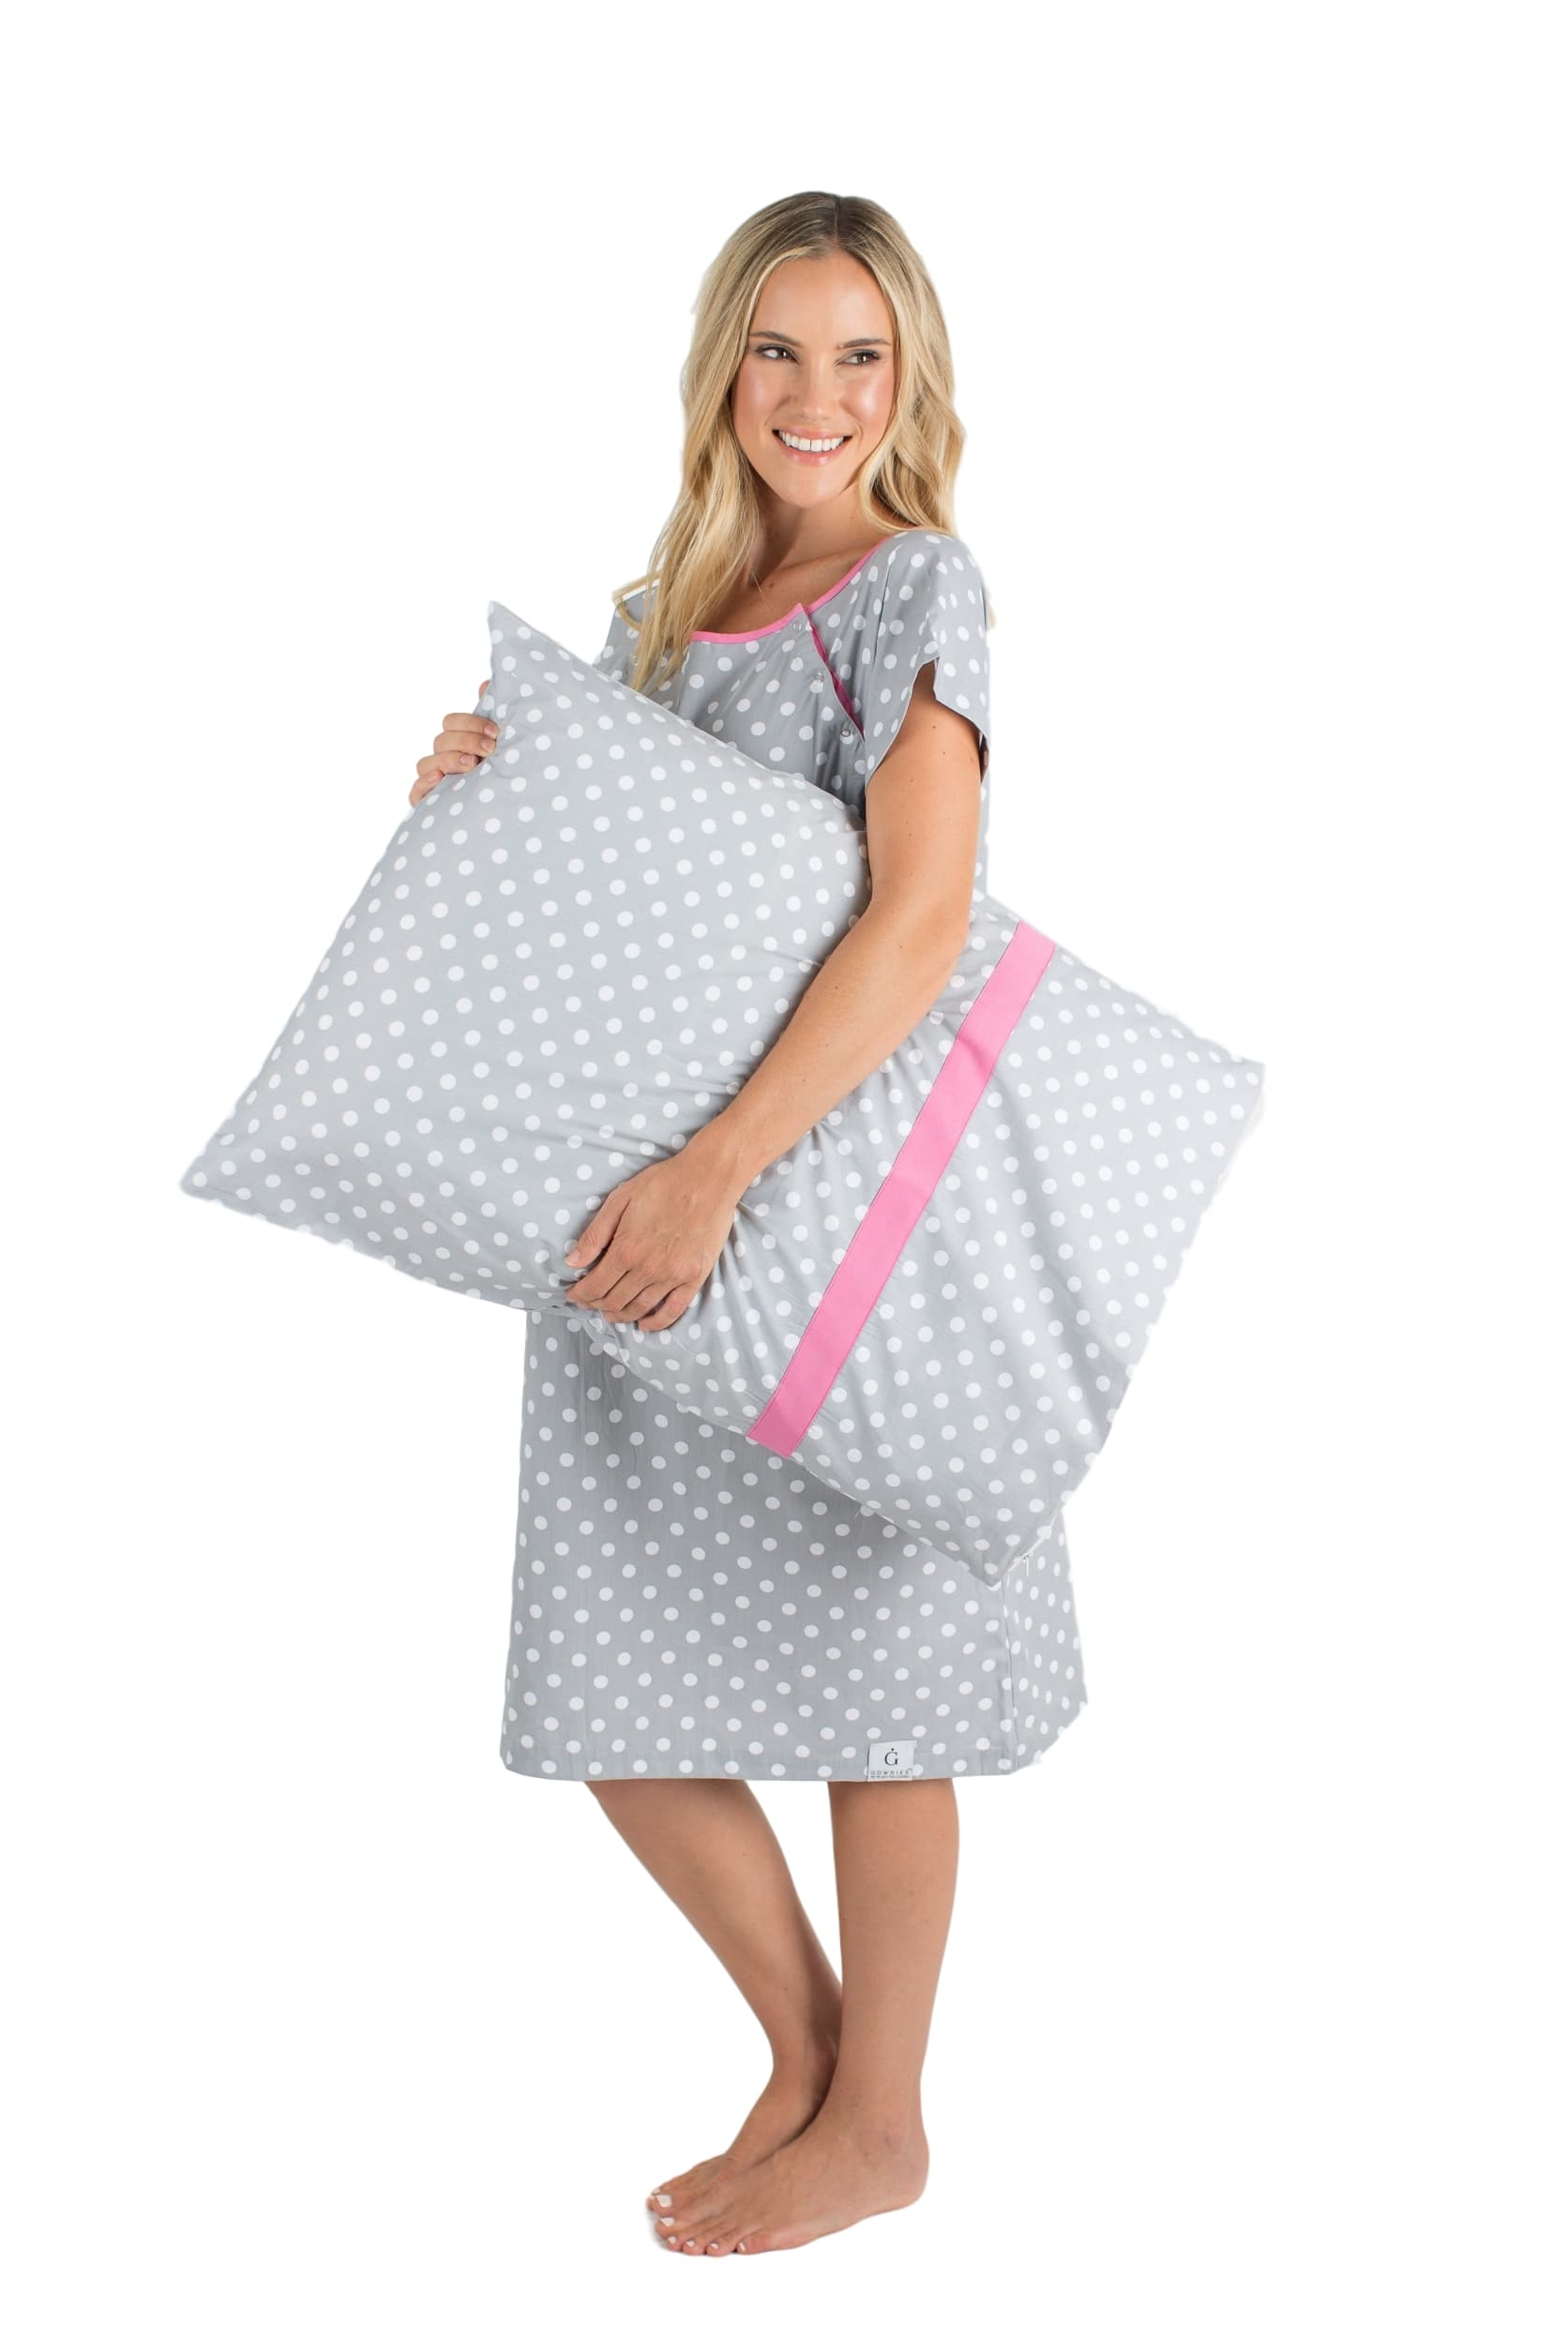 Lisa Maternity Labor and Delivery Hospital Gown Gownie & Matching Pillowcase Set